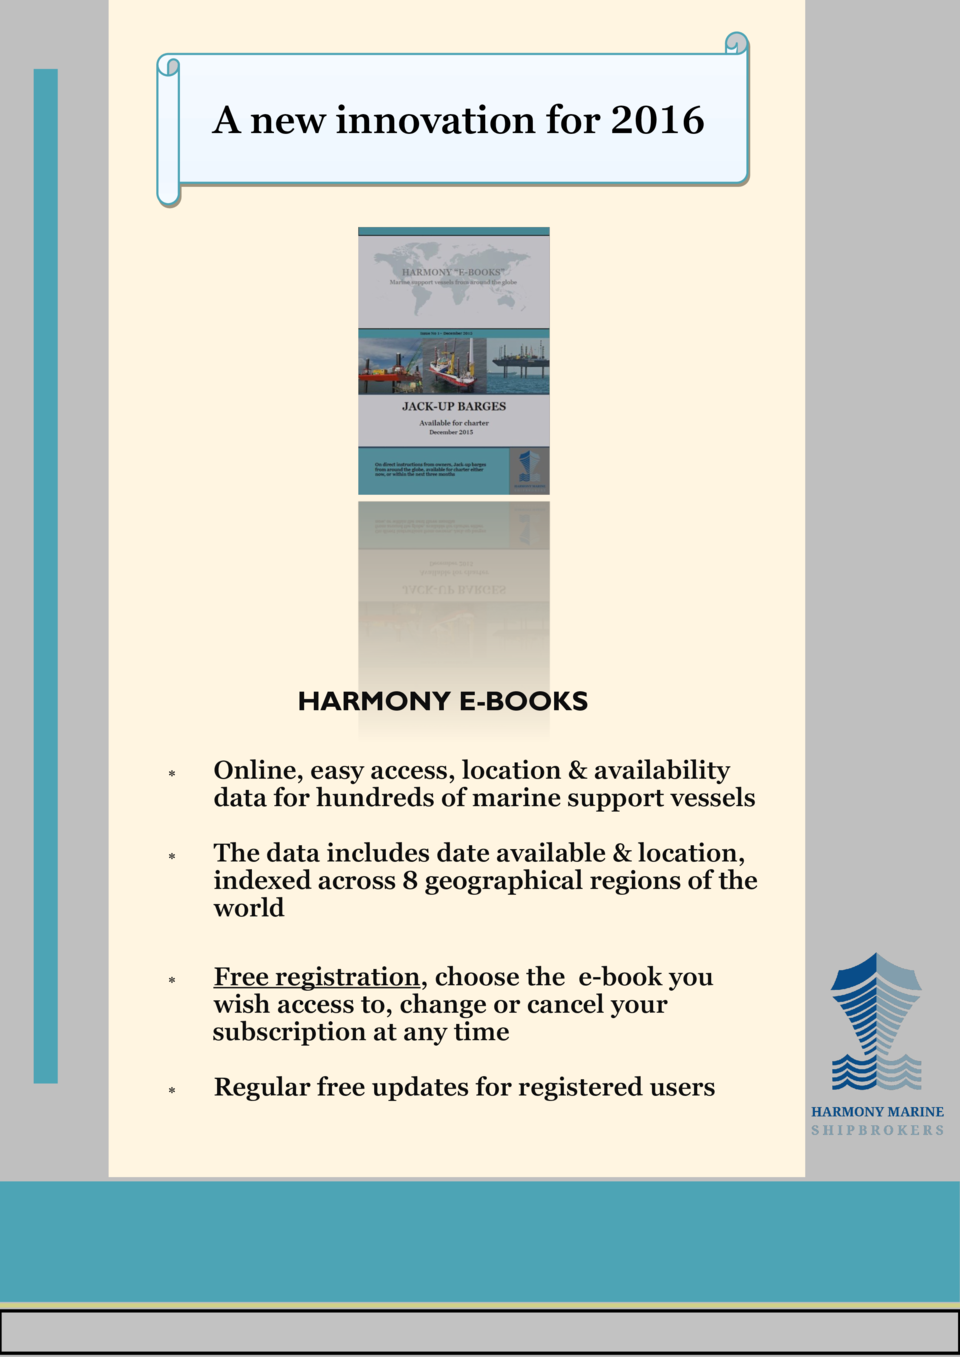 2  A new innovation for 2016  HARMONY E-BOOKS      Online, easy access, location   availability data for hundreds of marin...